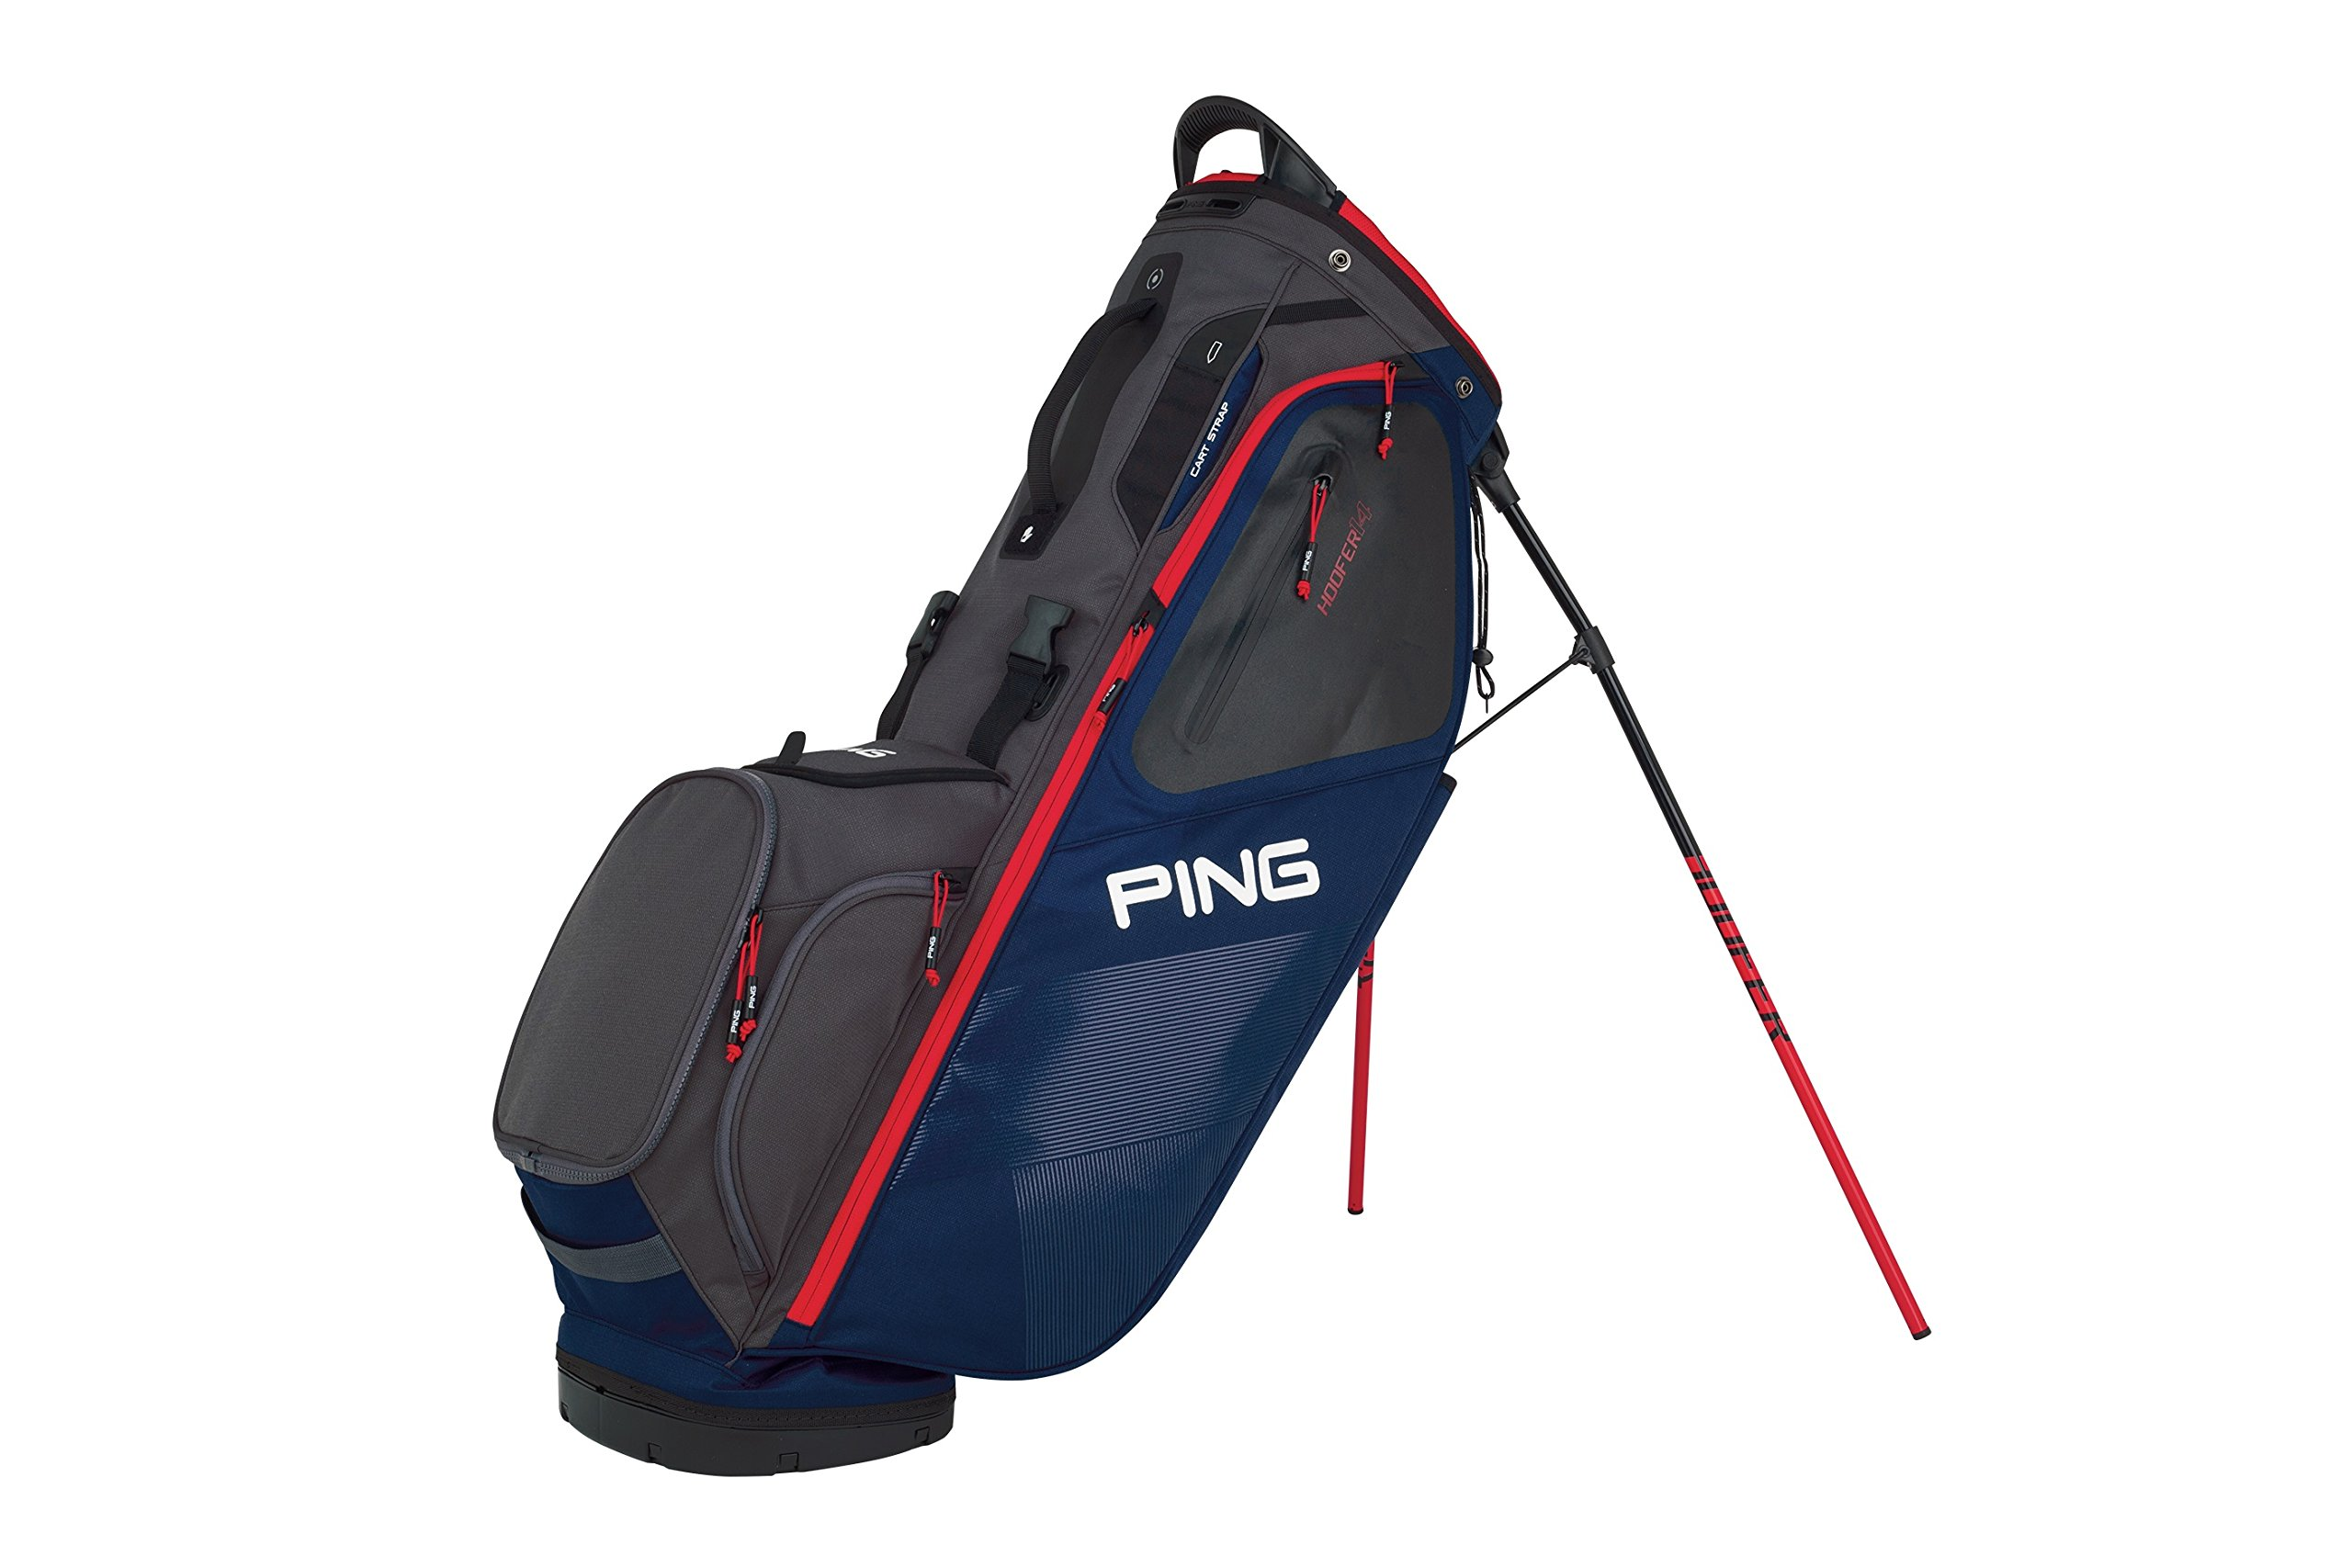 PING 2018 HOOFER 14 181 STAND GOLF BAG 06 NAVY/GRAPHITE/RED by Ping (Image #1)